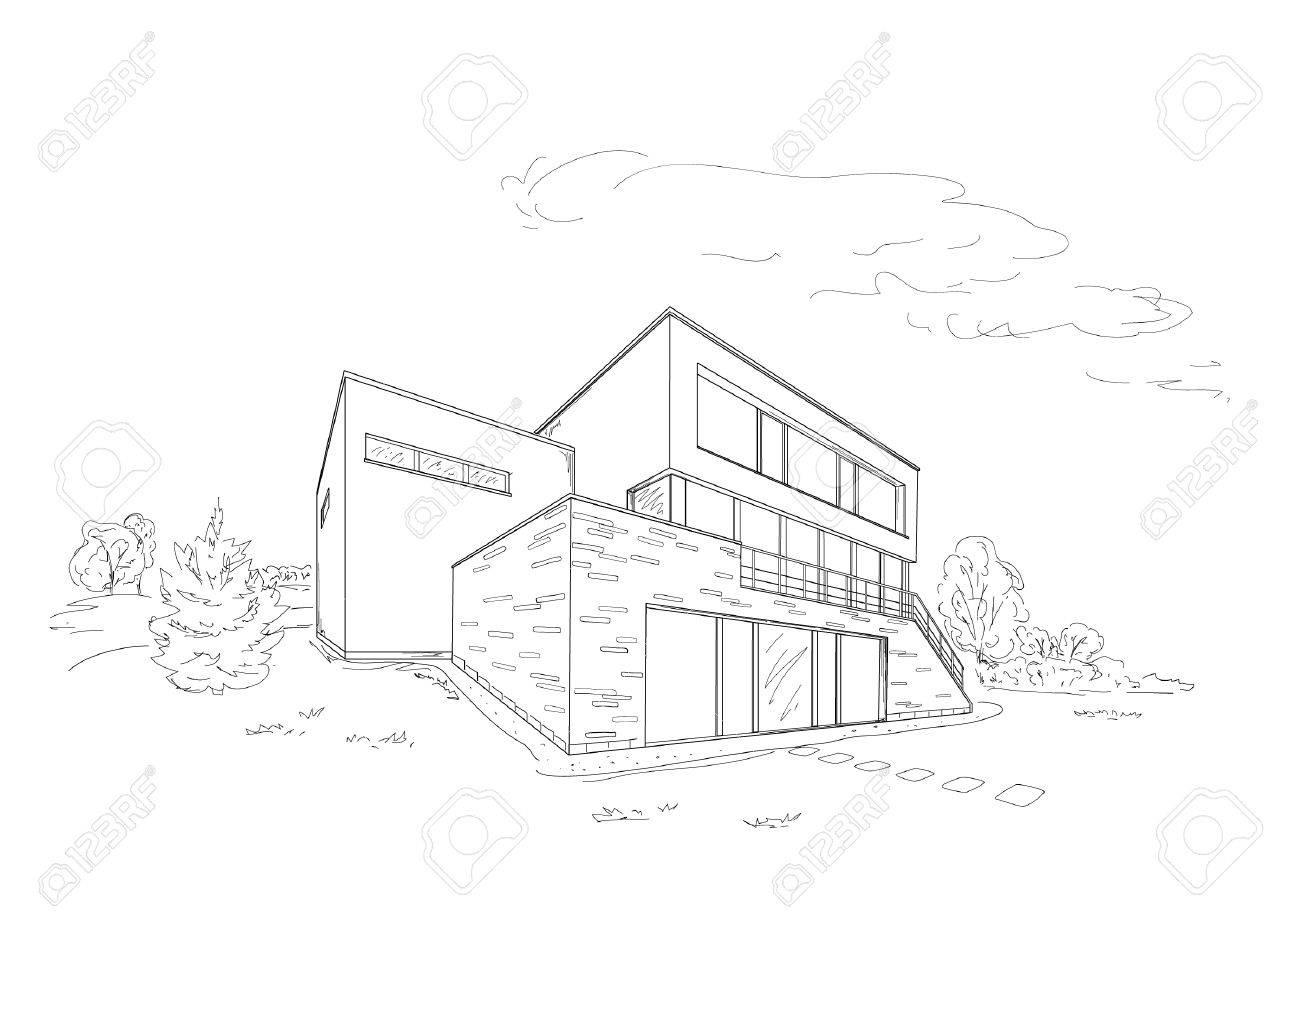 Indian Modern House Drawing Plans Home Drawings Vector Sketch ... - ^